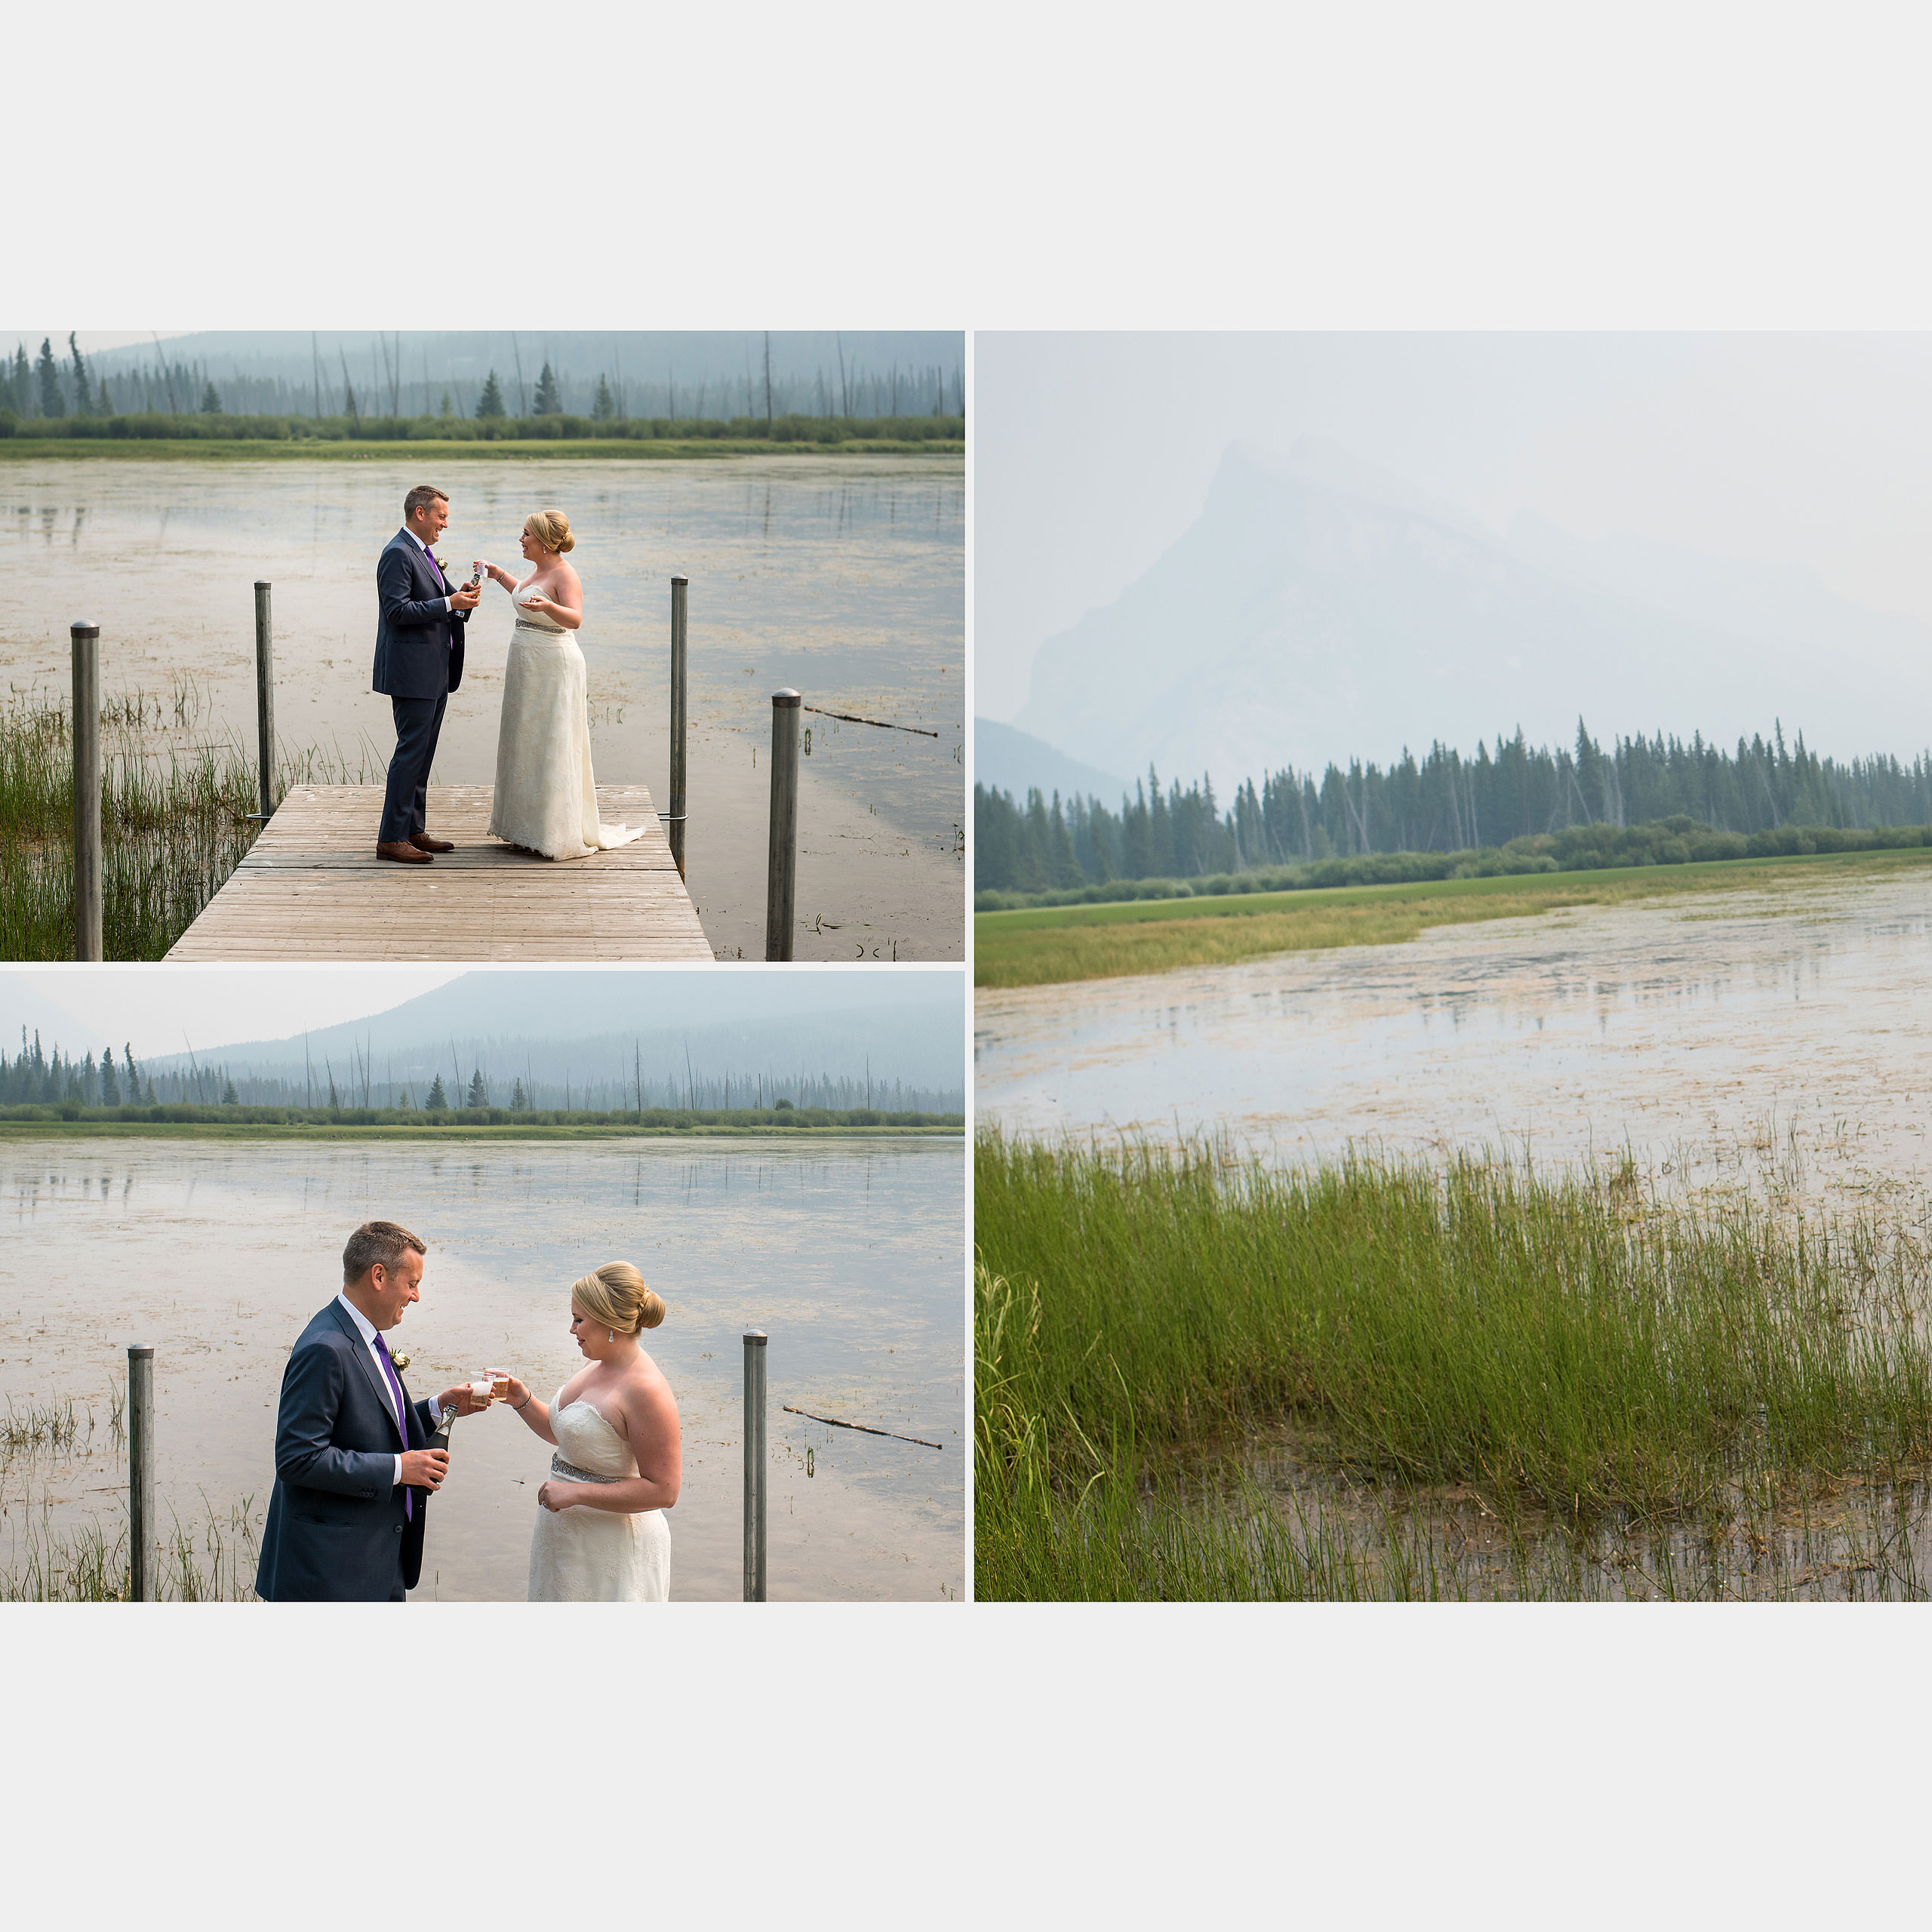 heirloom wedding album by Banff photographer sean leblanc